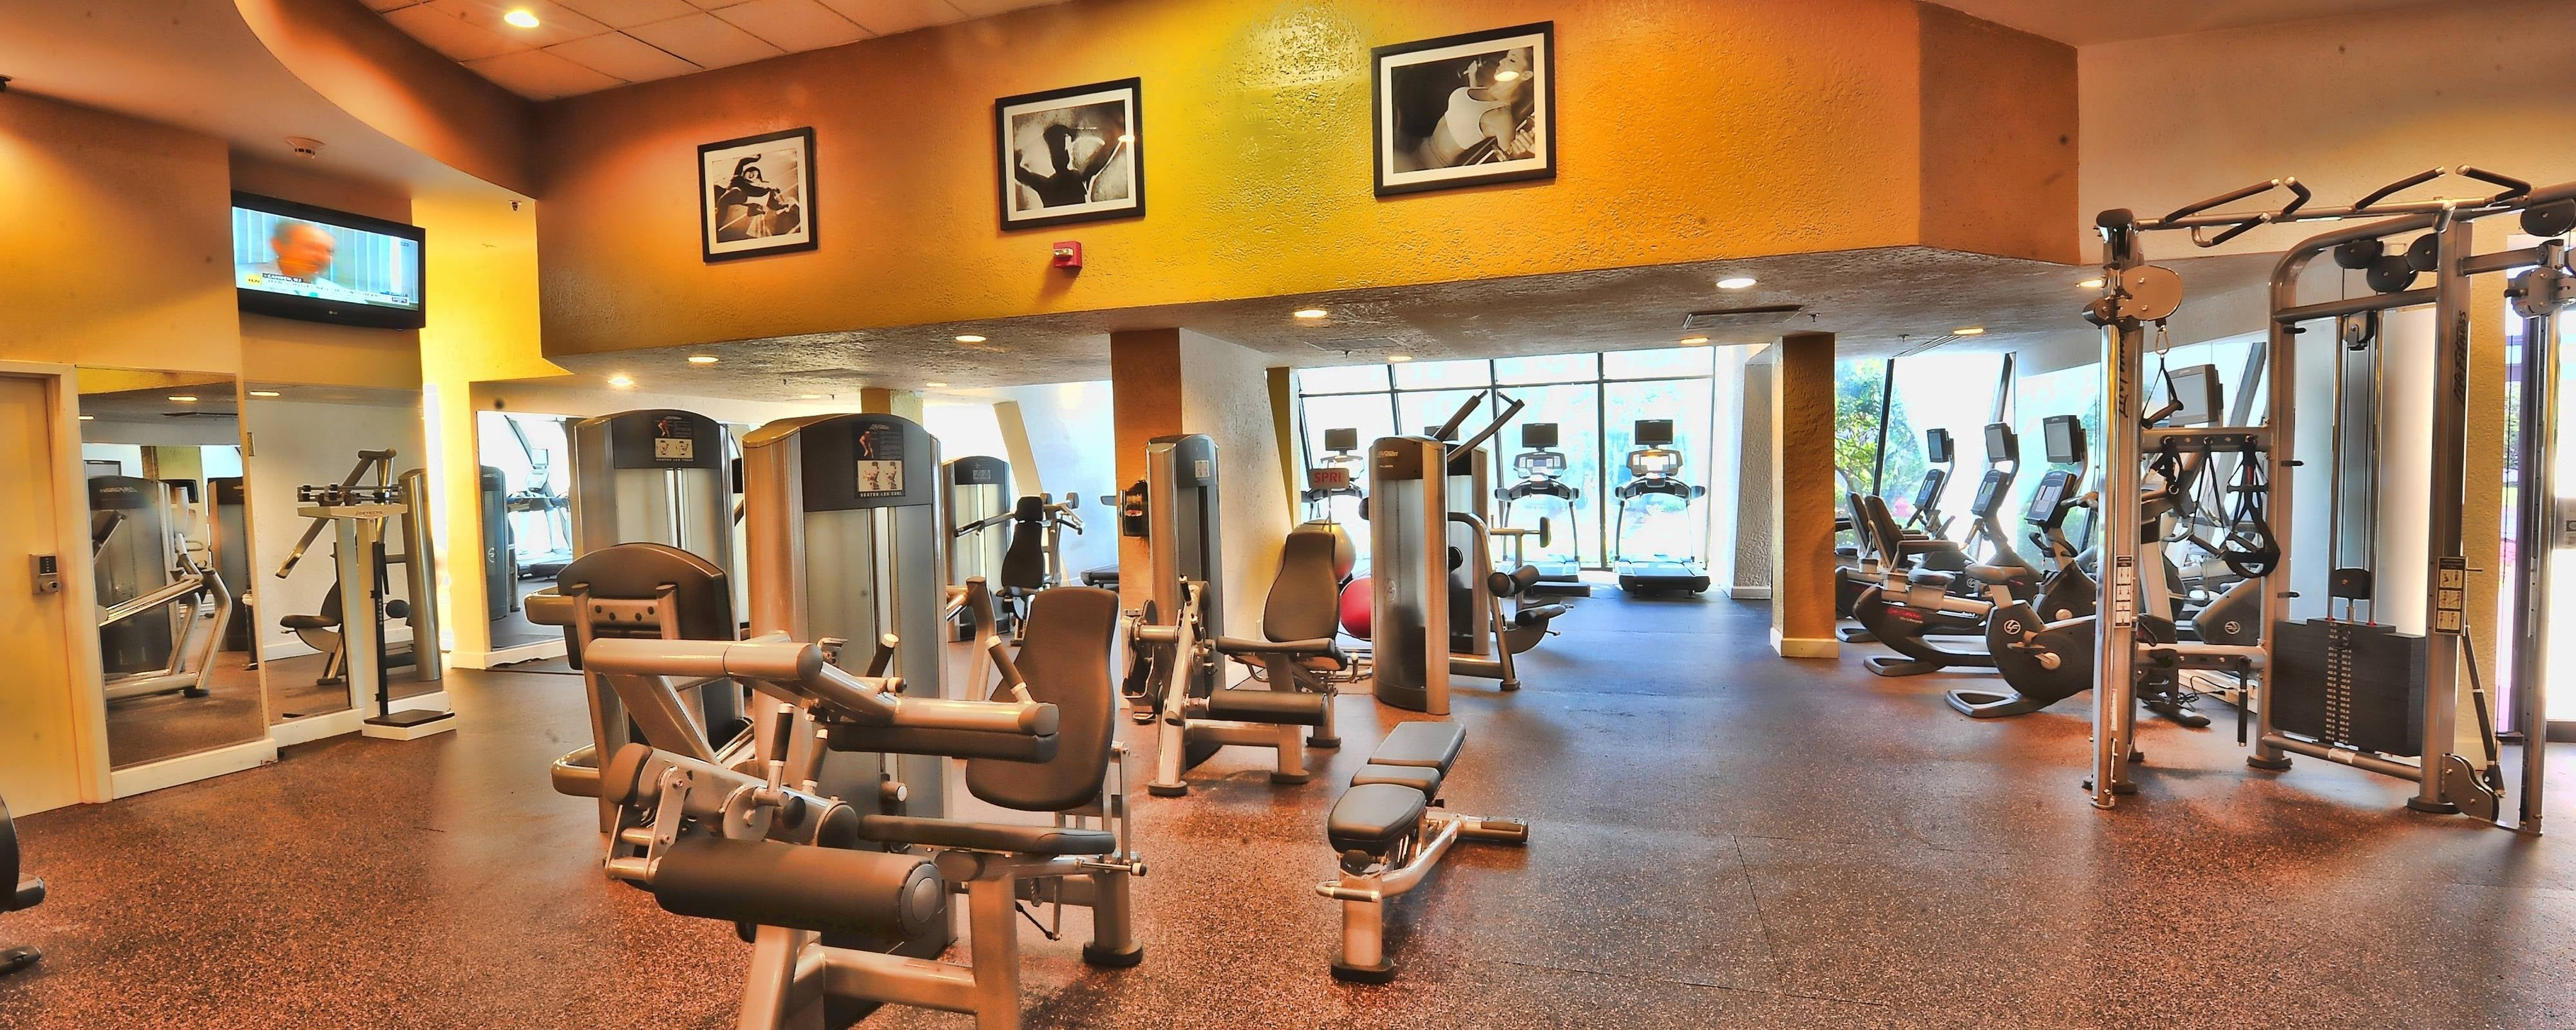 Hotel Gym In Mobile Recreation Activities At The Marriott Mobile